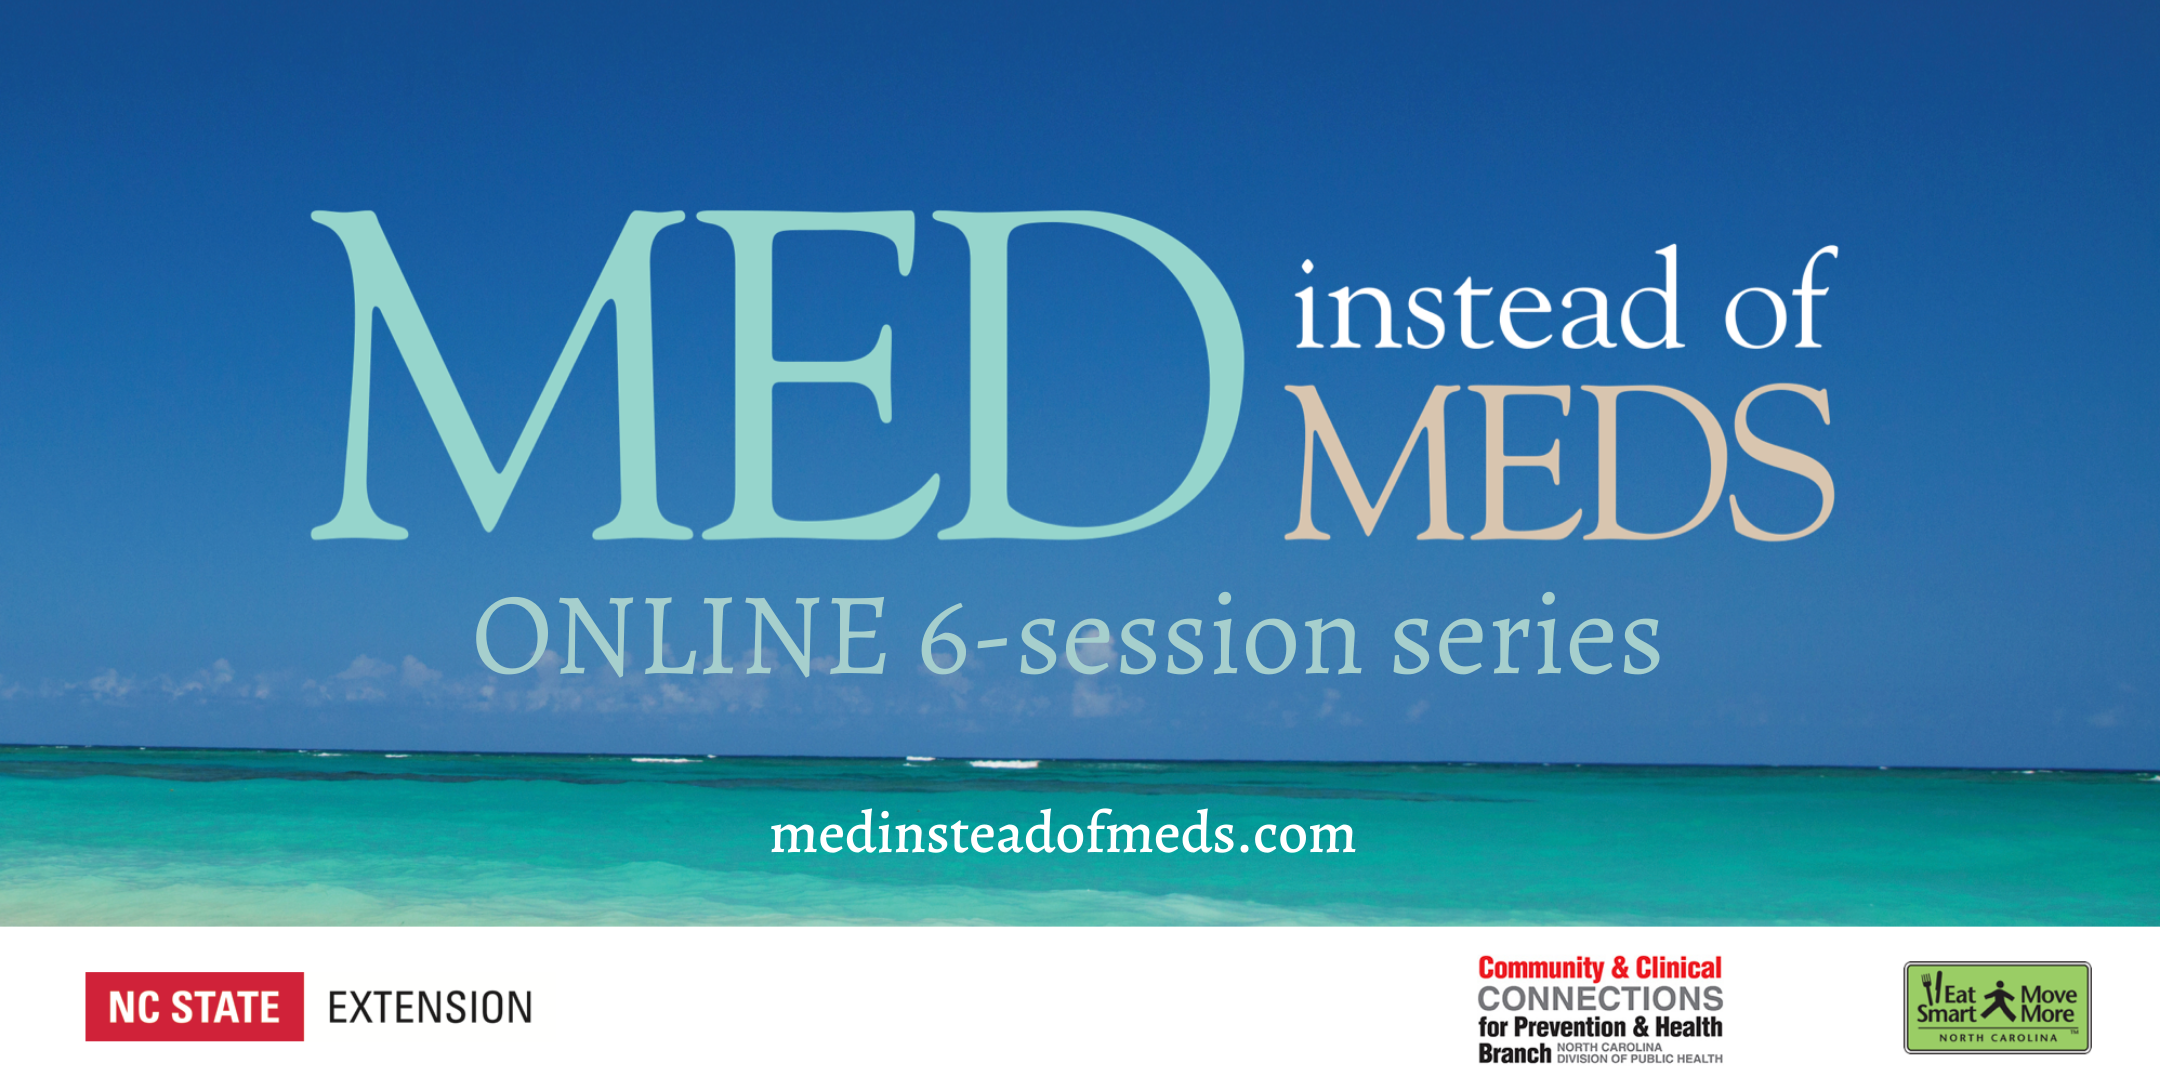 Med instead of meds logo